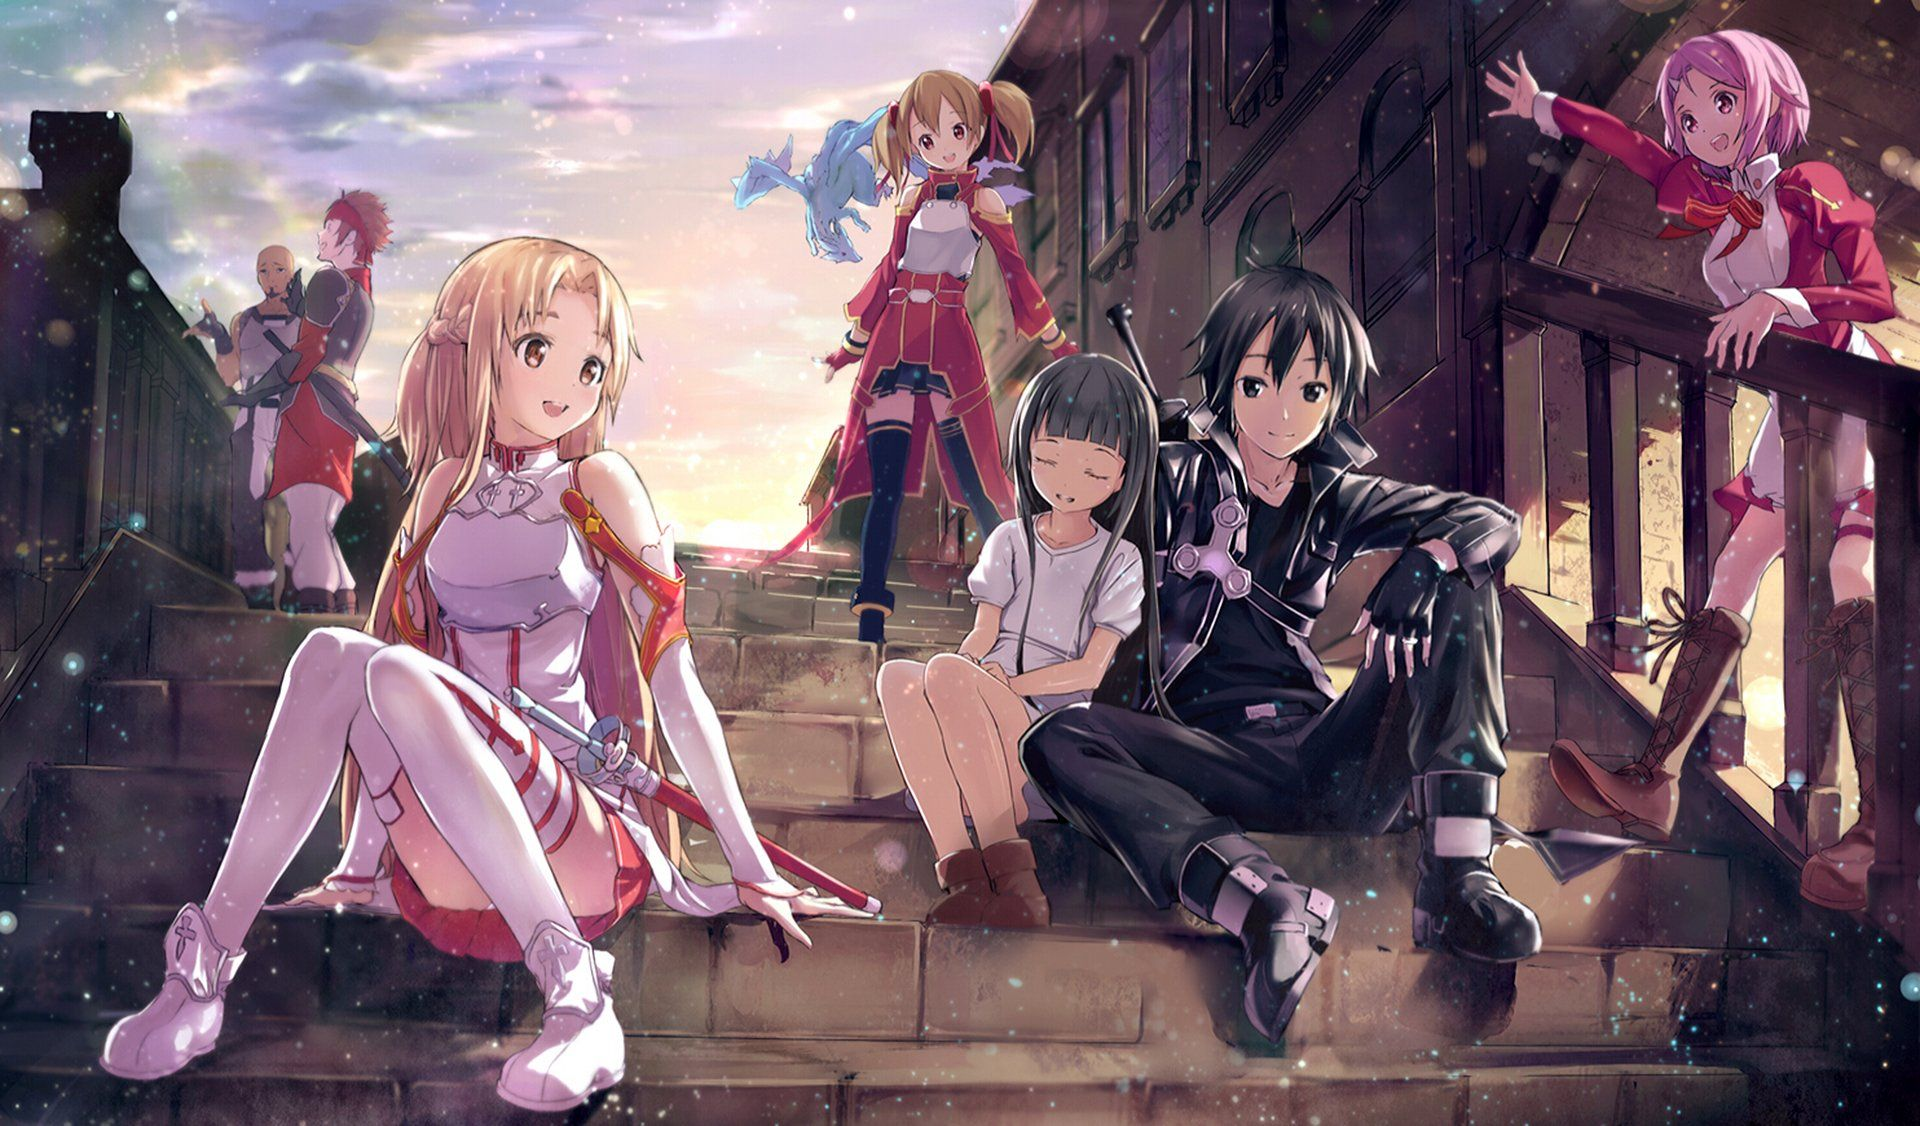 Sword Art Online Wallpaper 1080p BozhuWallpaper